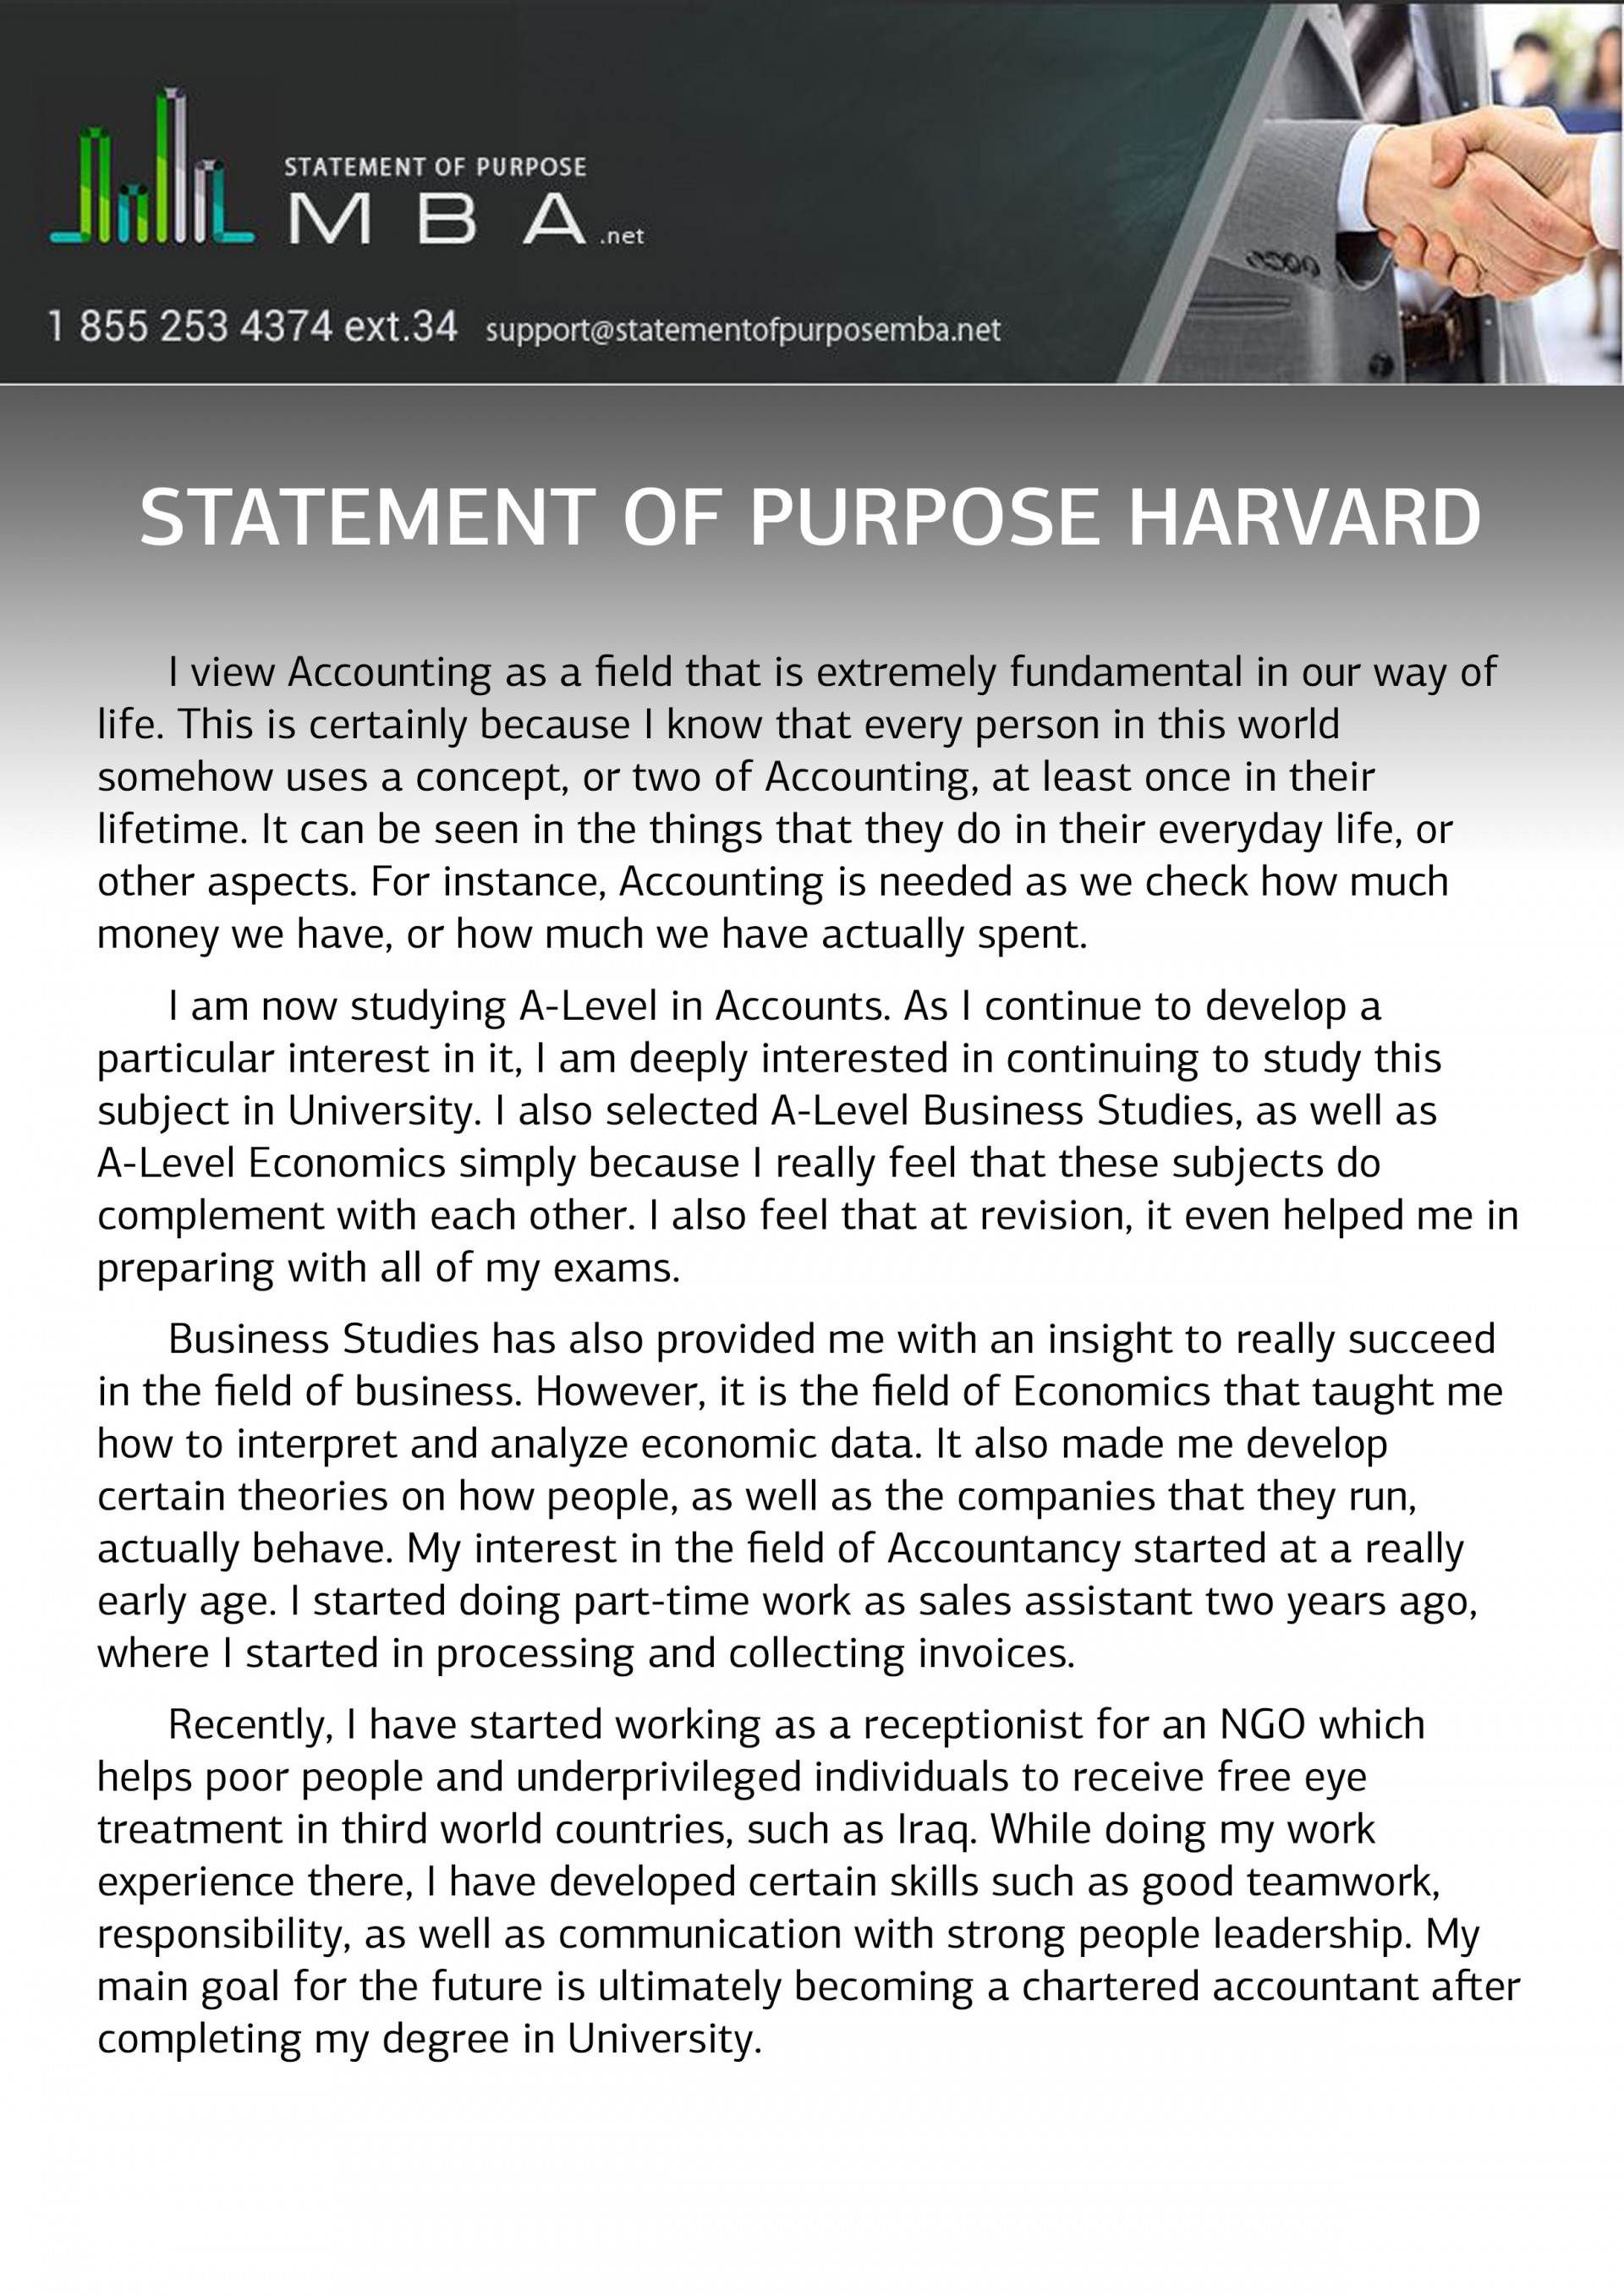 018 Statement Of Purpose Harvard Sample Essay Example Common App Awesome Examples Application 1920